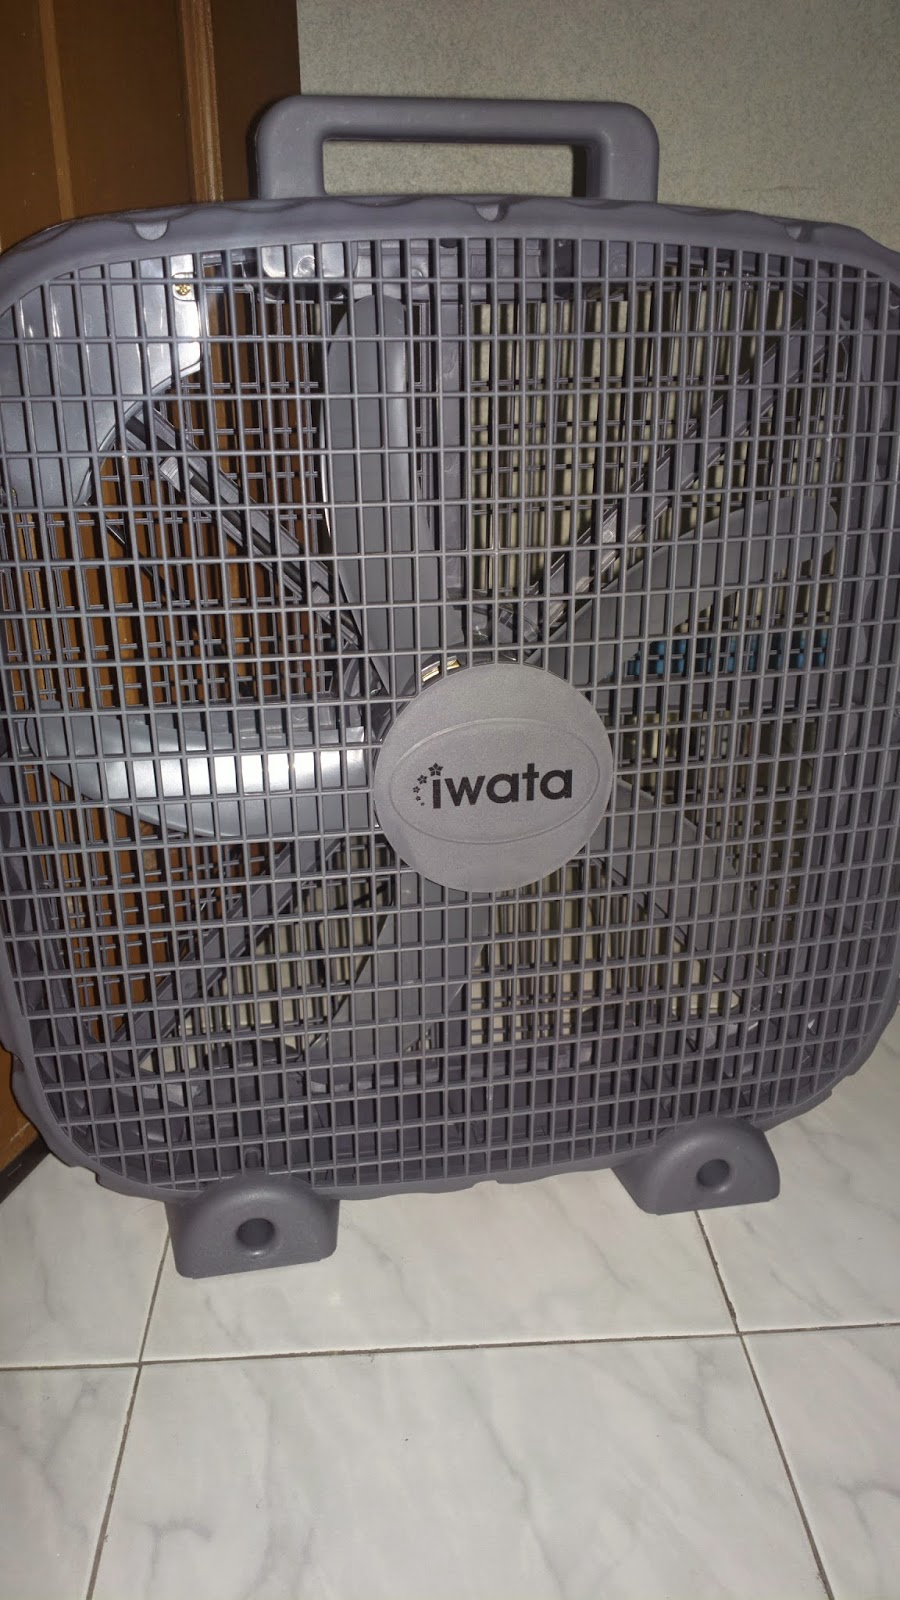 The Iwata Industrial Box Fan